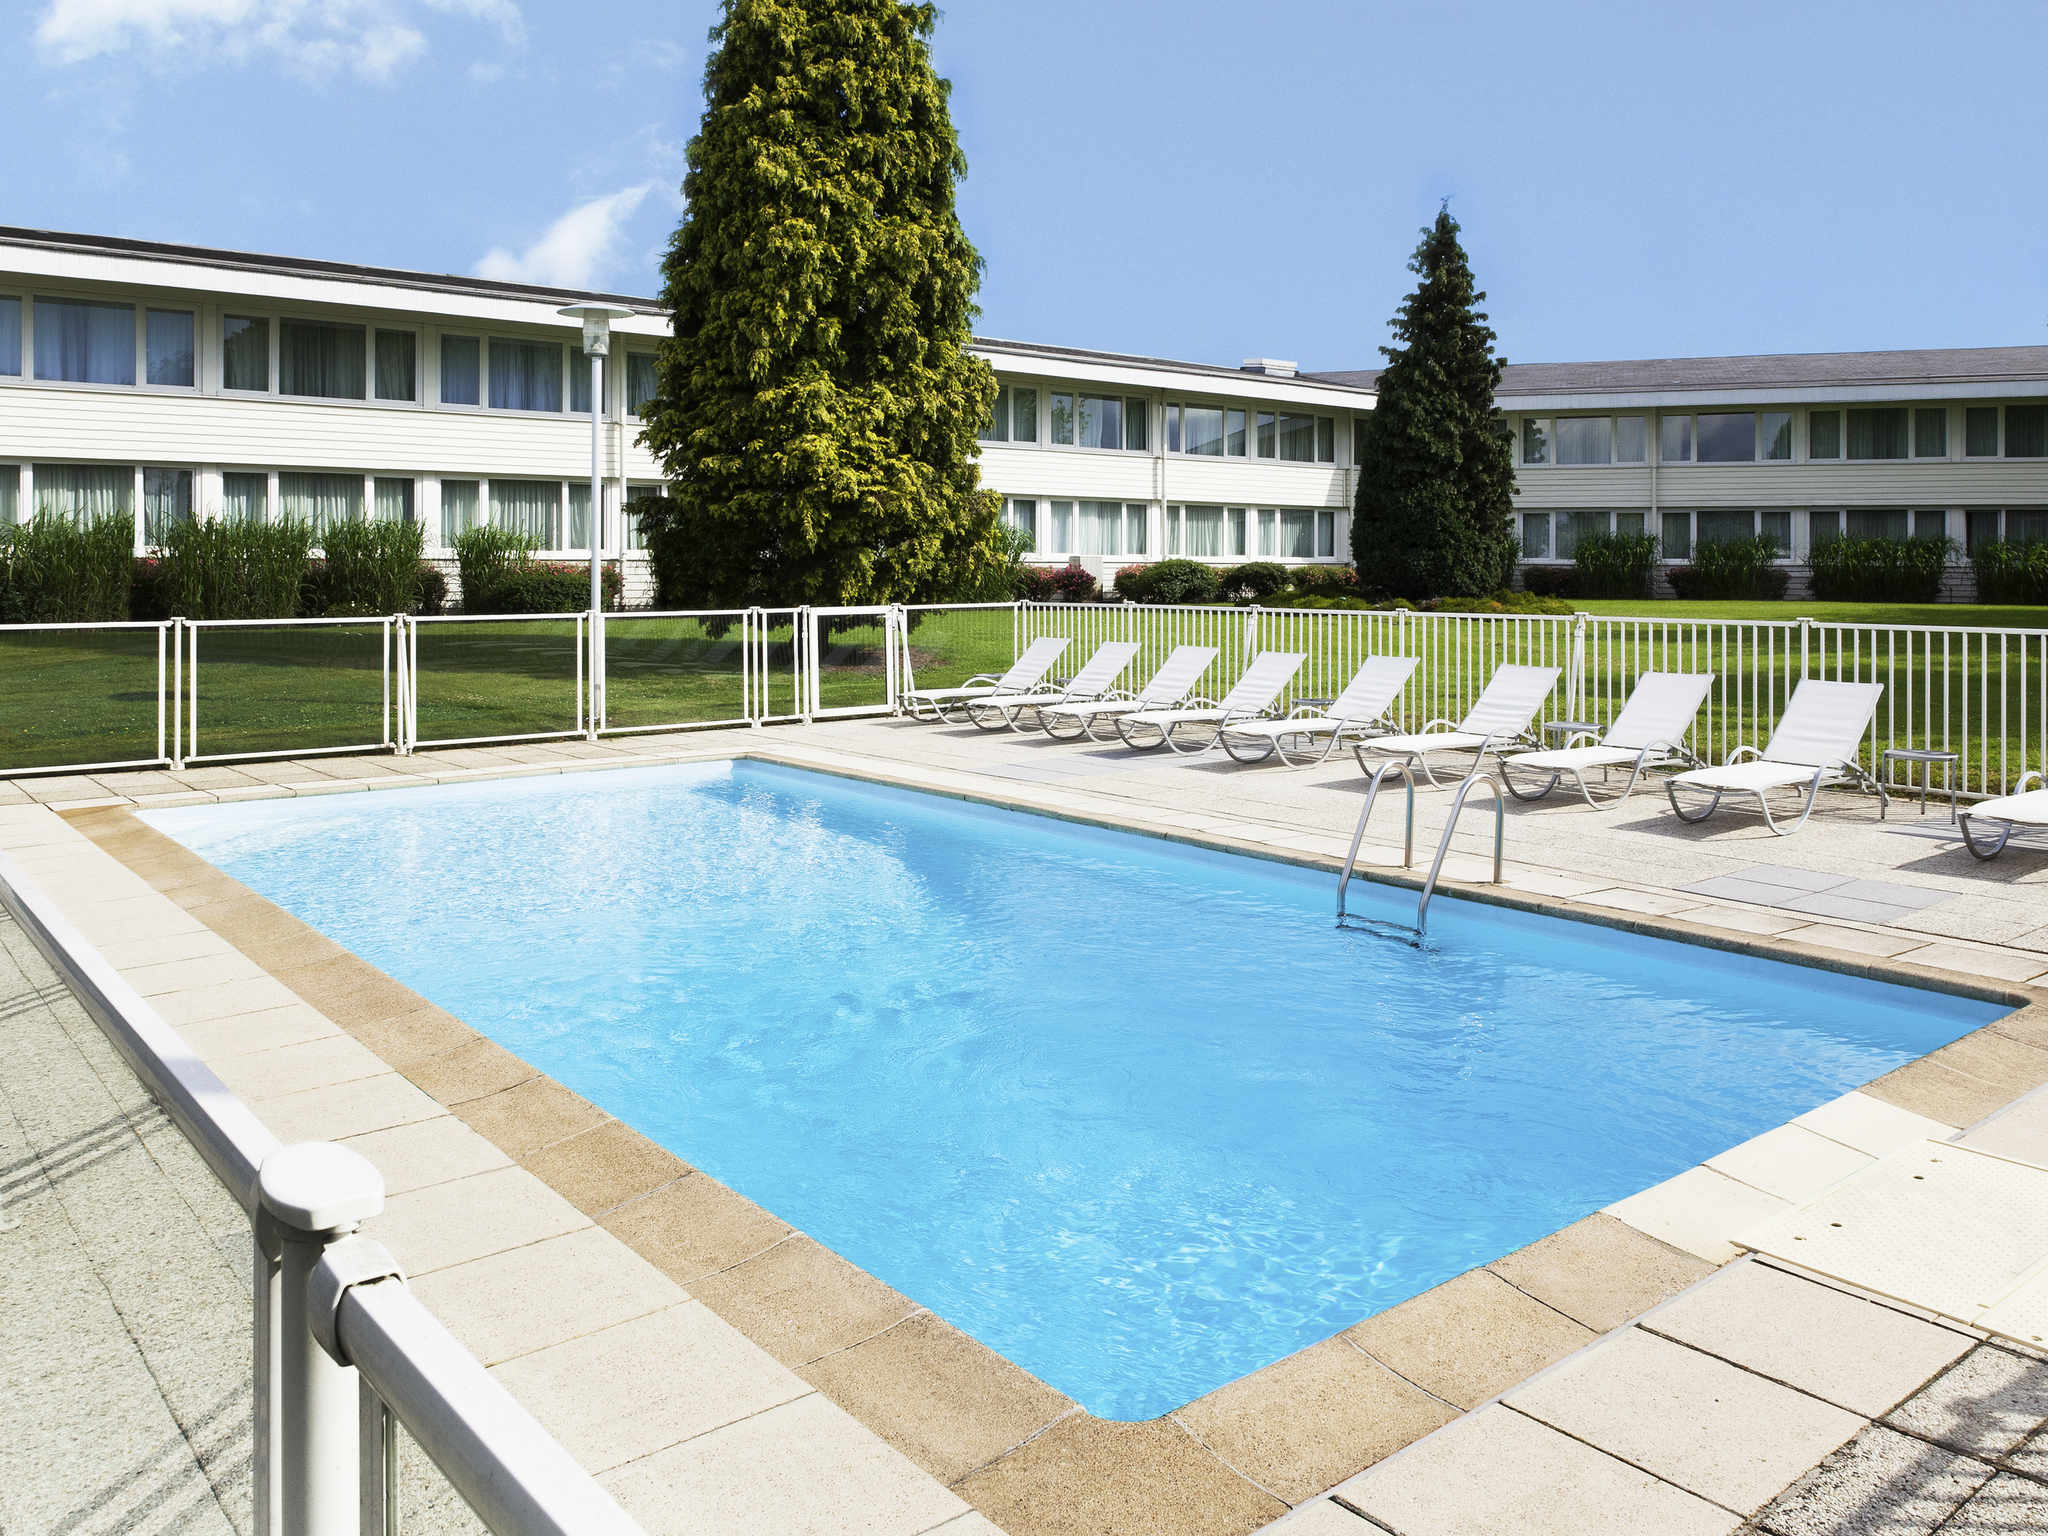 Hotell – Novotel Lille Aéroport